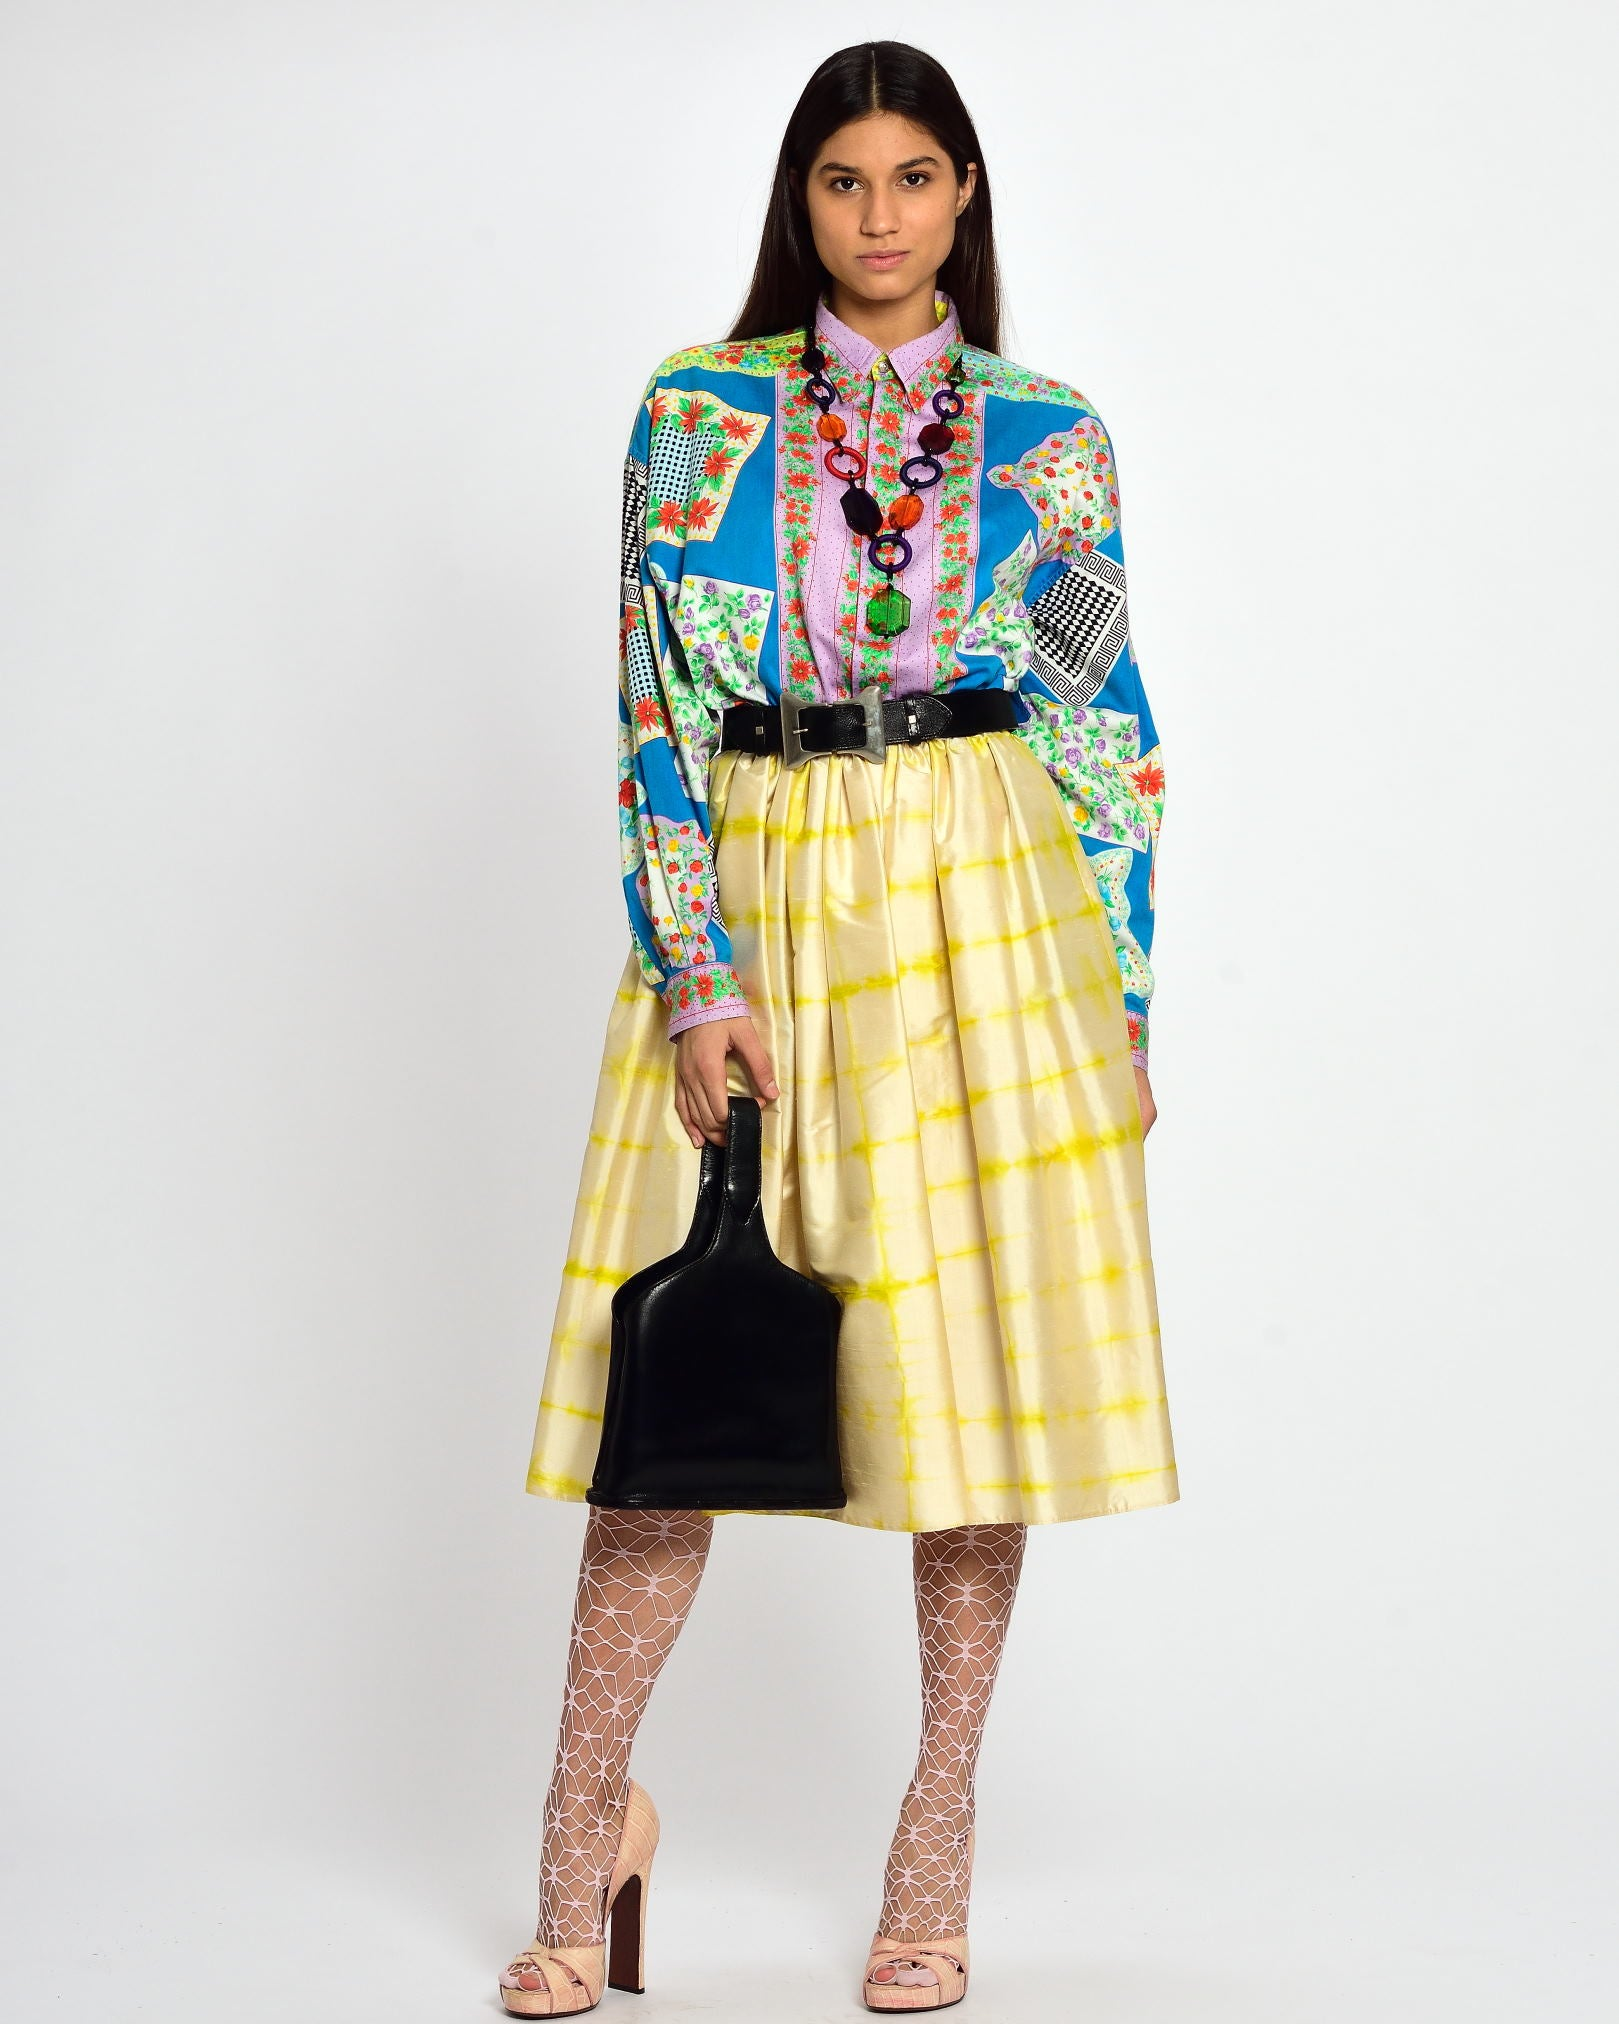 VERSUS by GIANNI VERSACE Floral Print Shirt